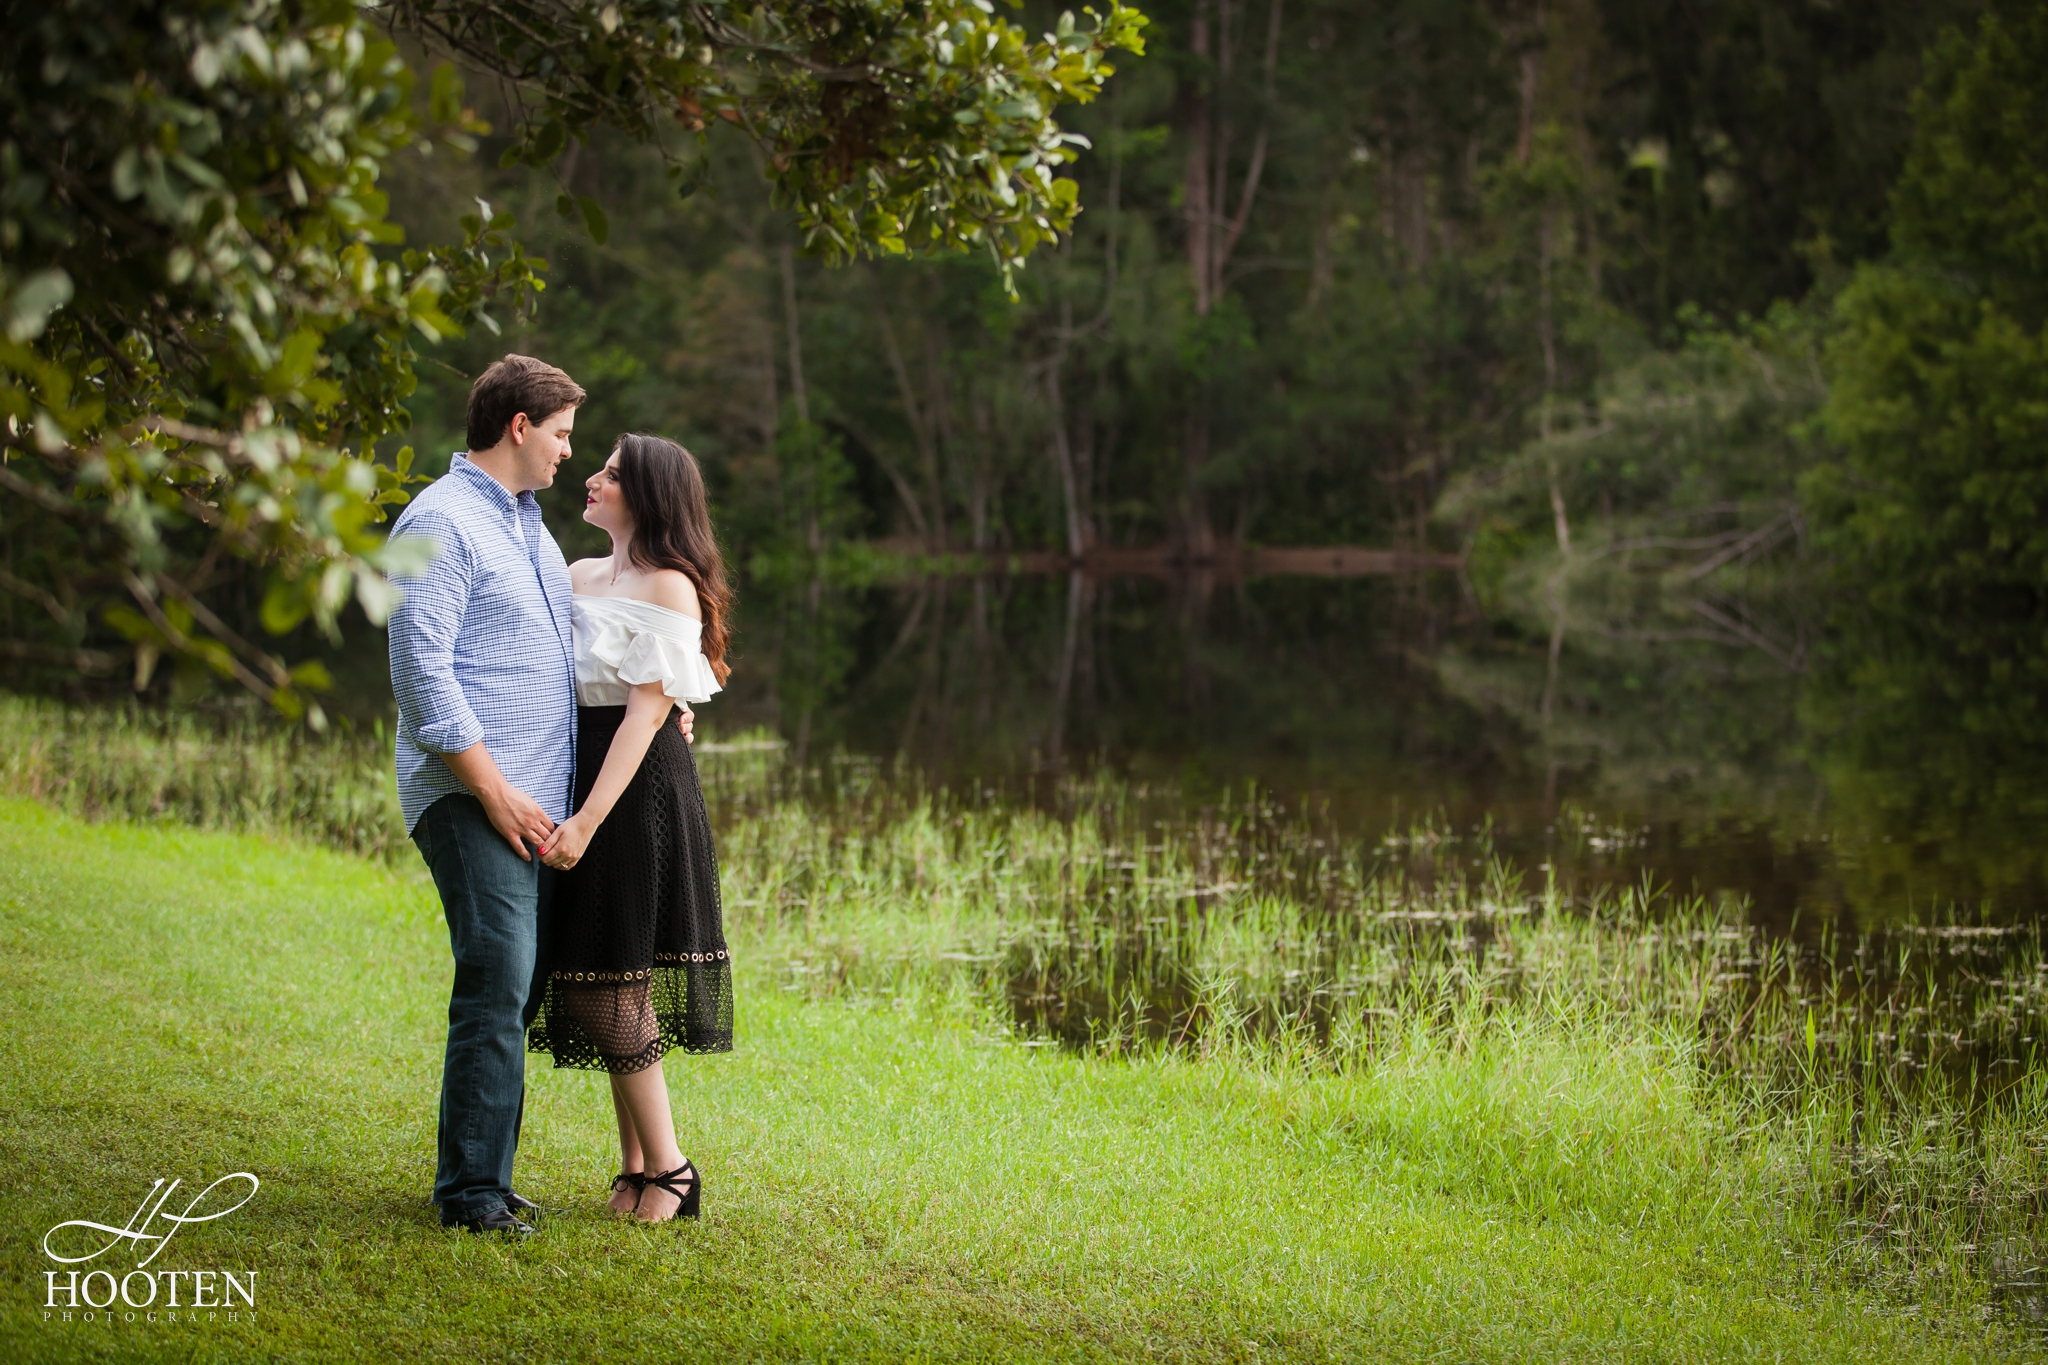 Tree-Tops-Park-Engagement-Session-Hooten Photography-7831.jpg